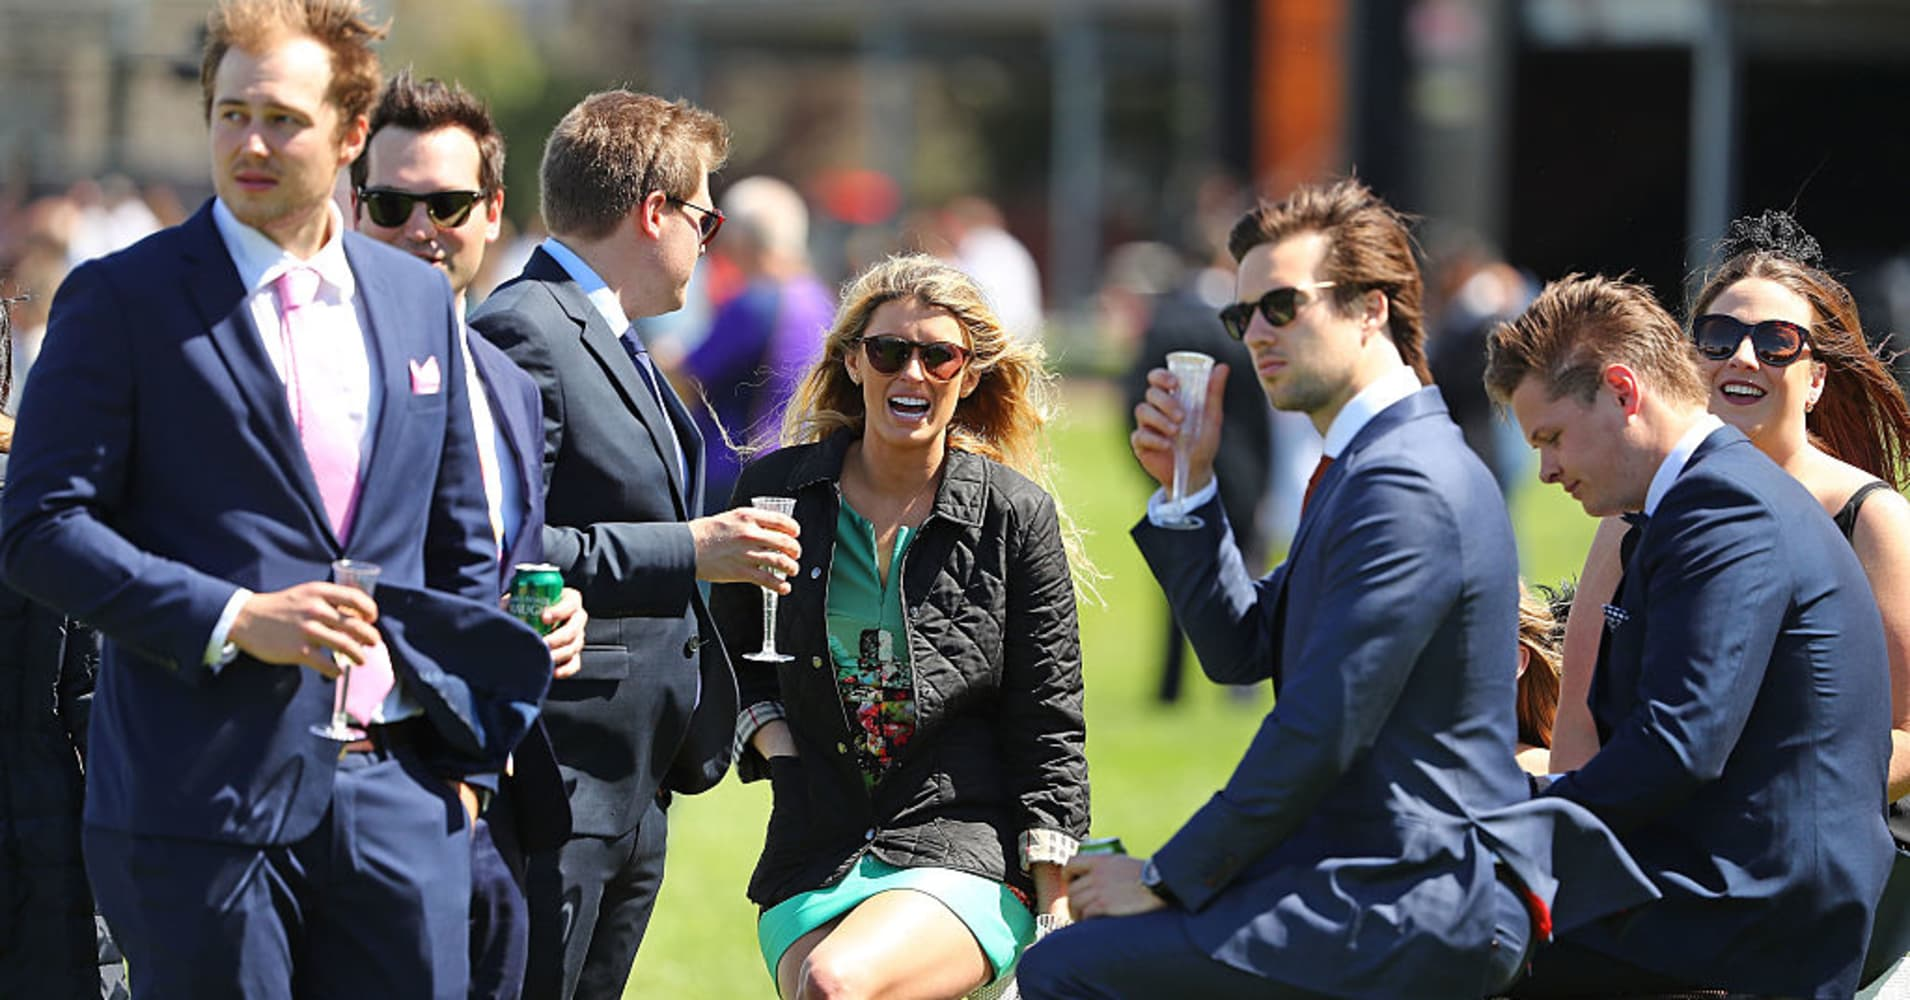 Racegoers, wealthy